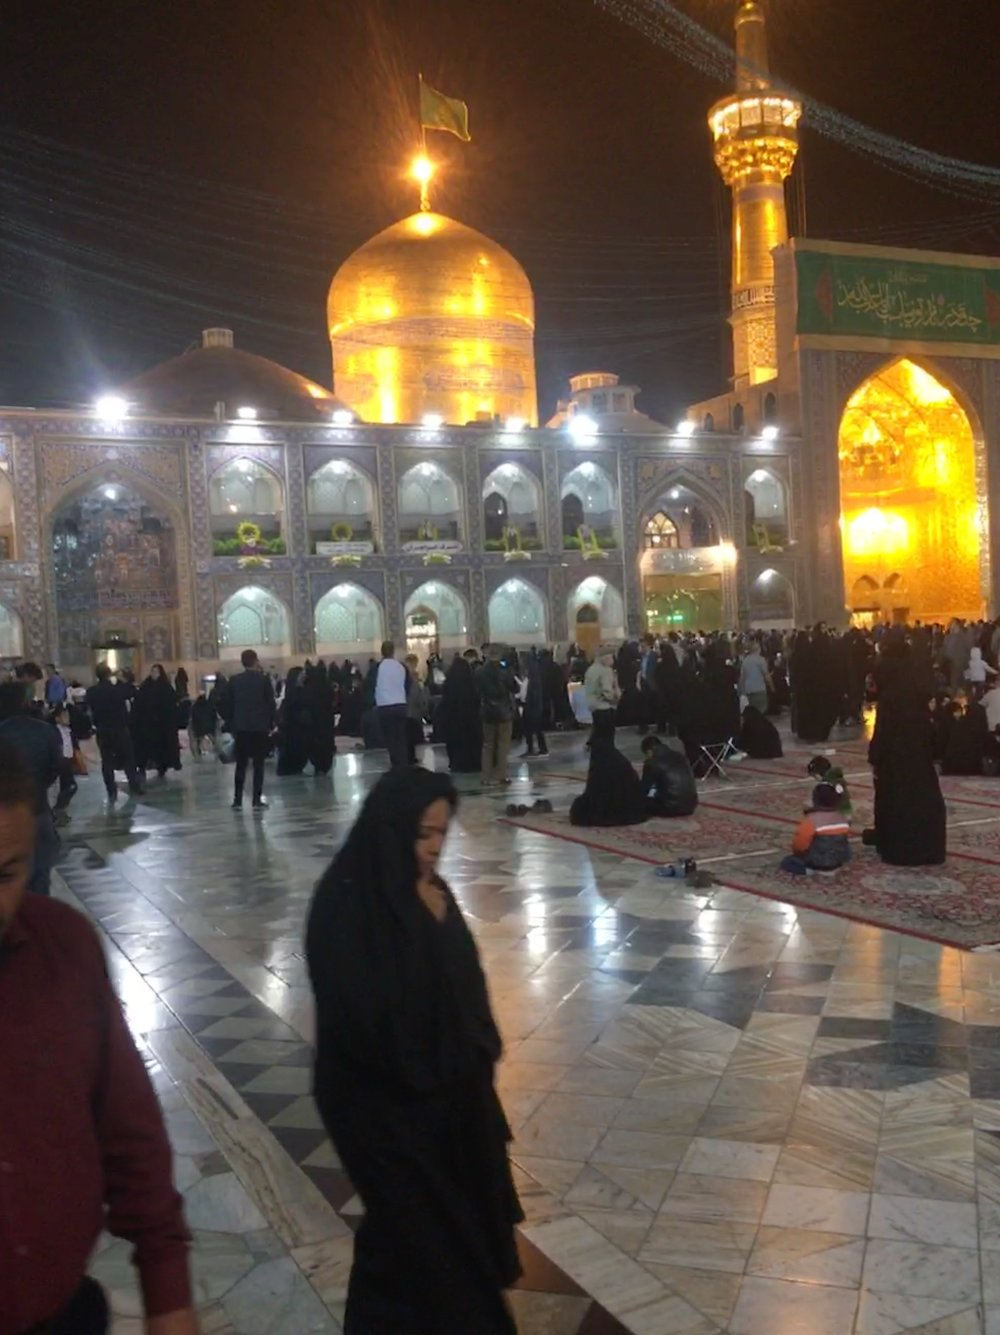 Imam Reza shrine courtyard